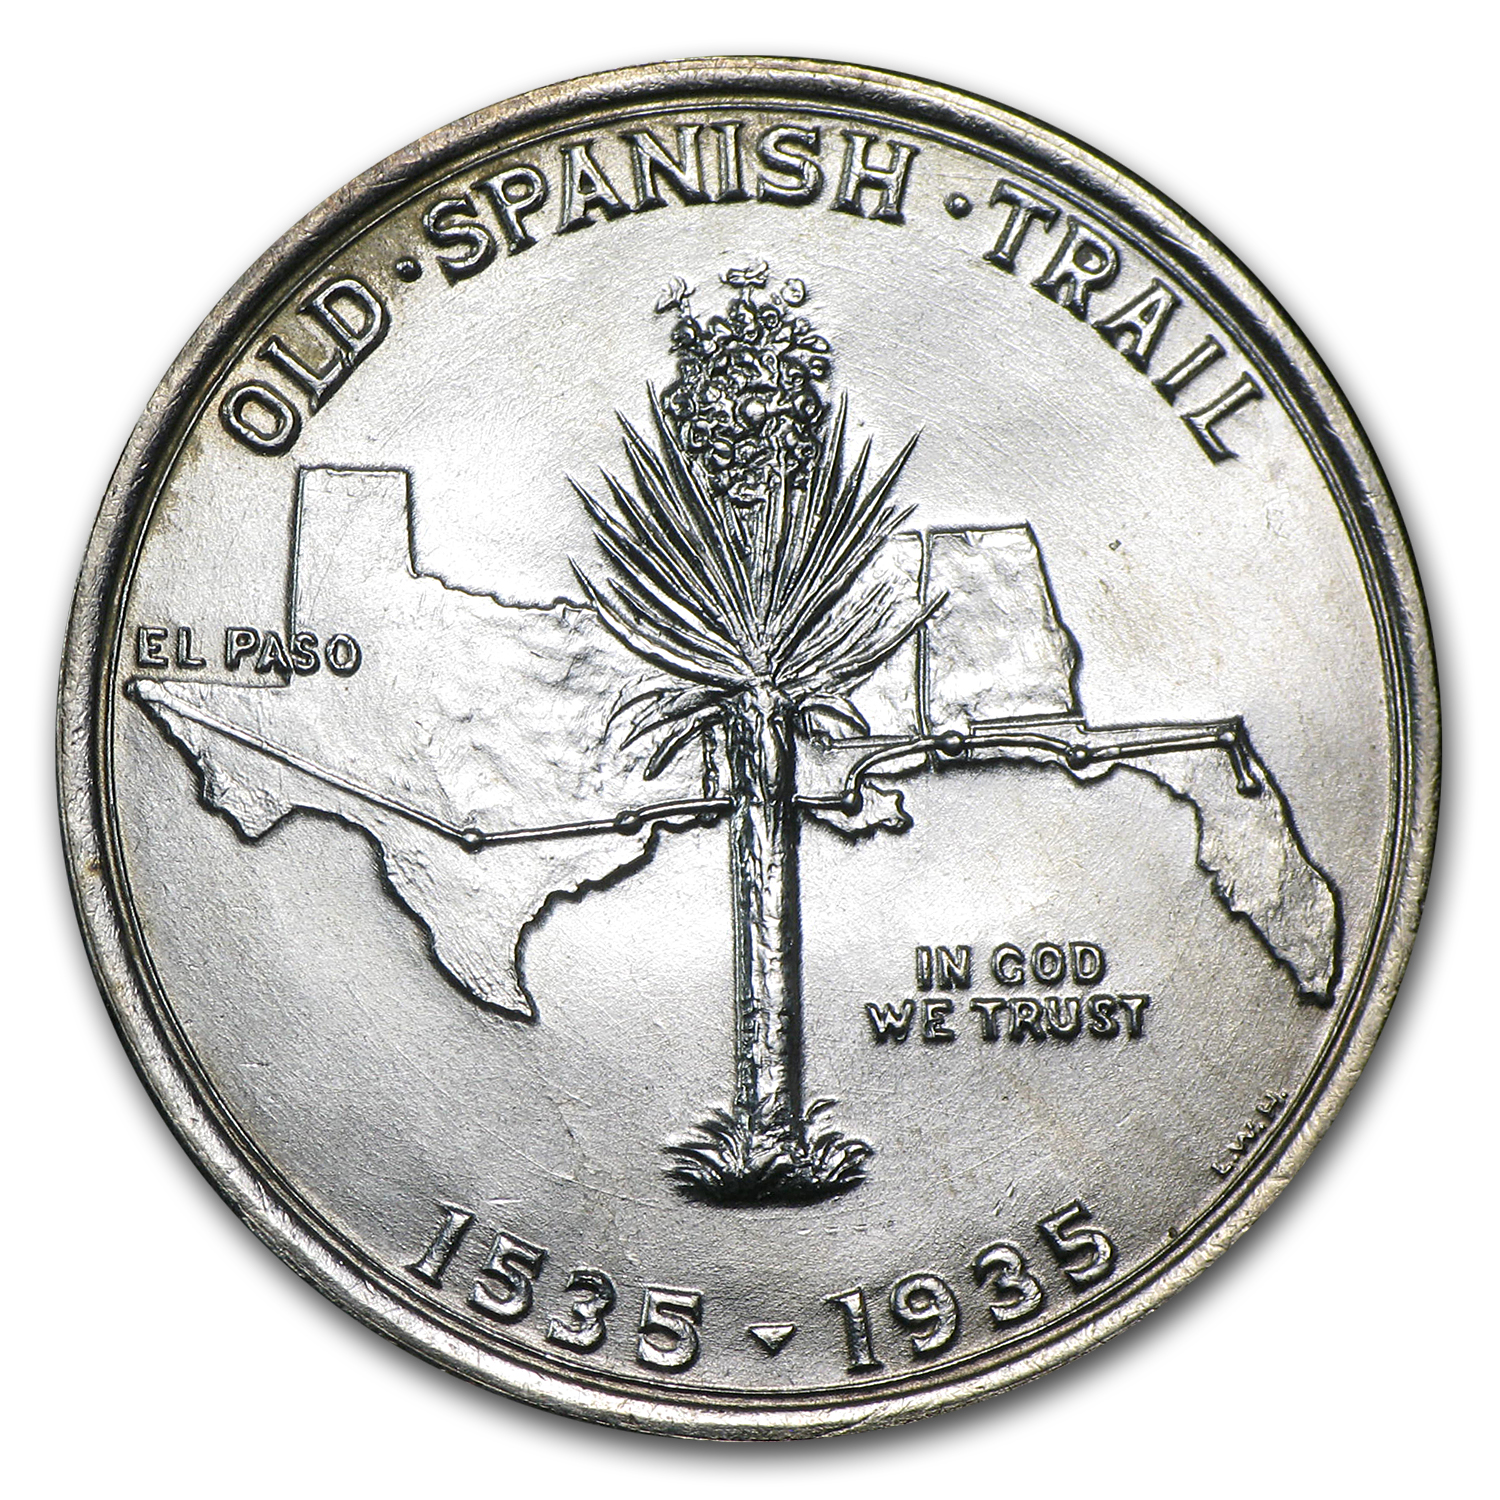 1935 Spanish Trail Half AU